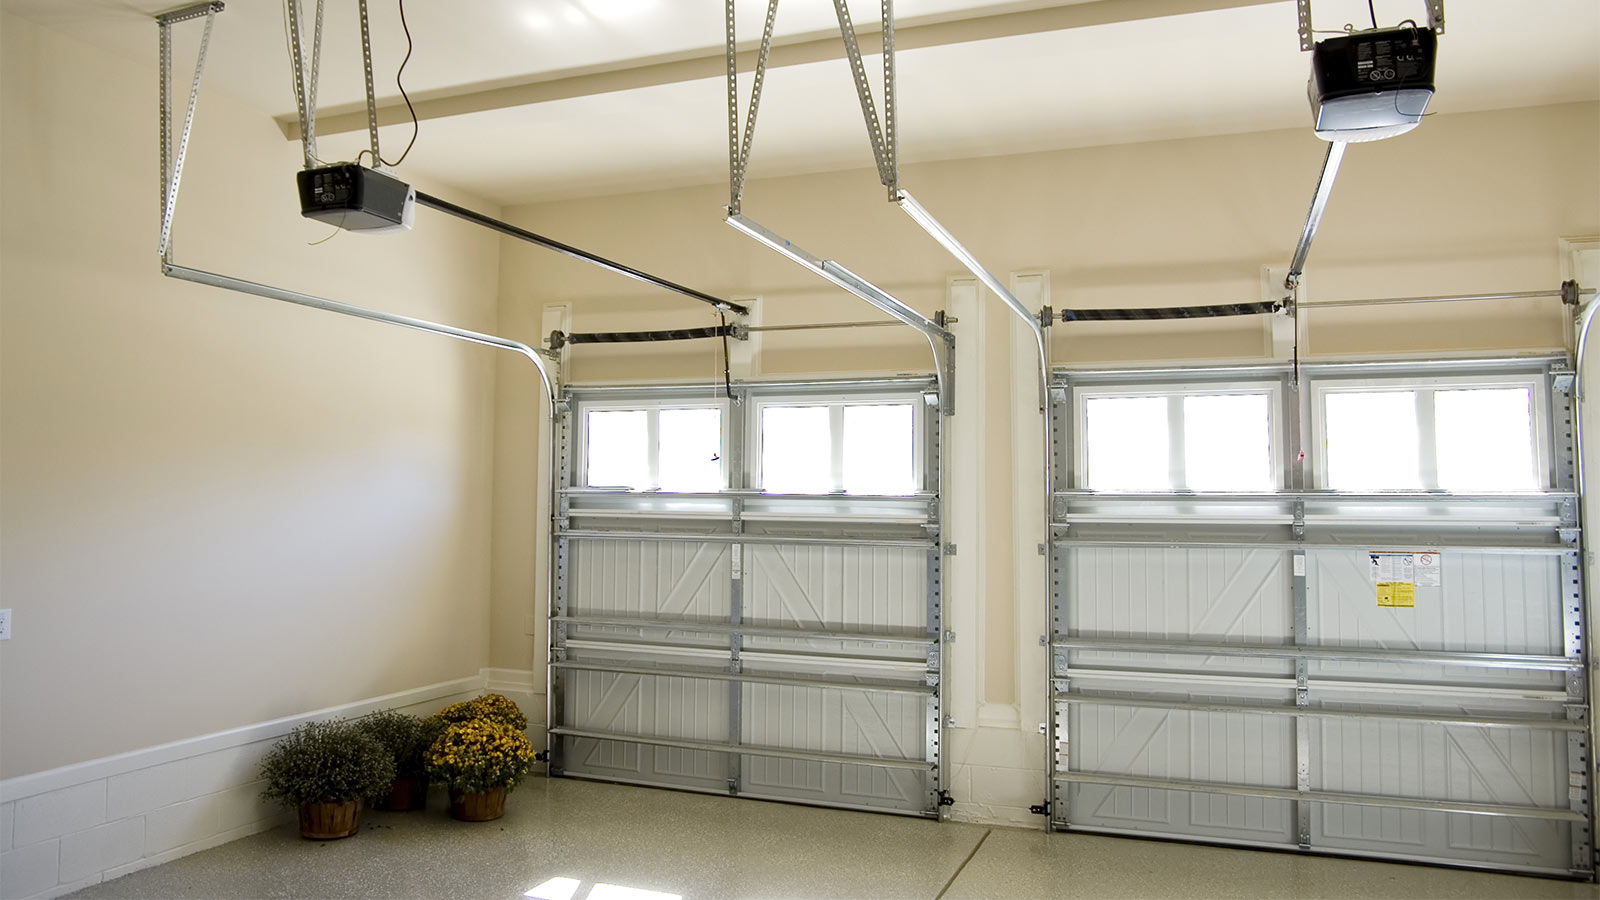 Sectional Garage Doors from Security Gates Suffolk suppliers.